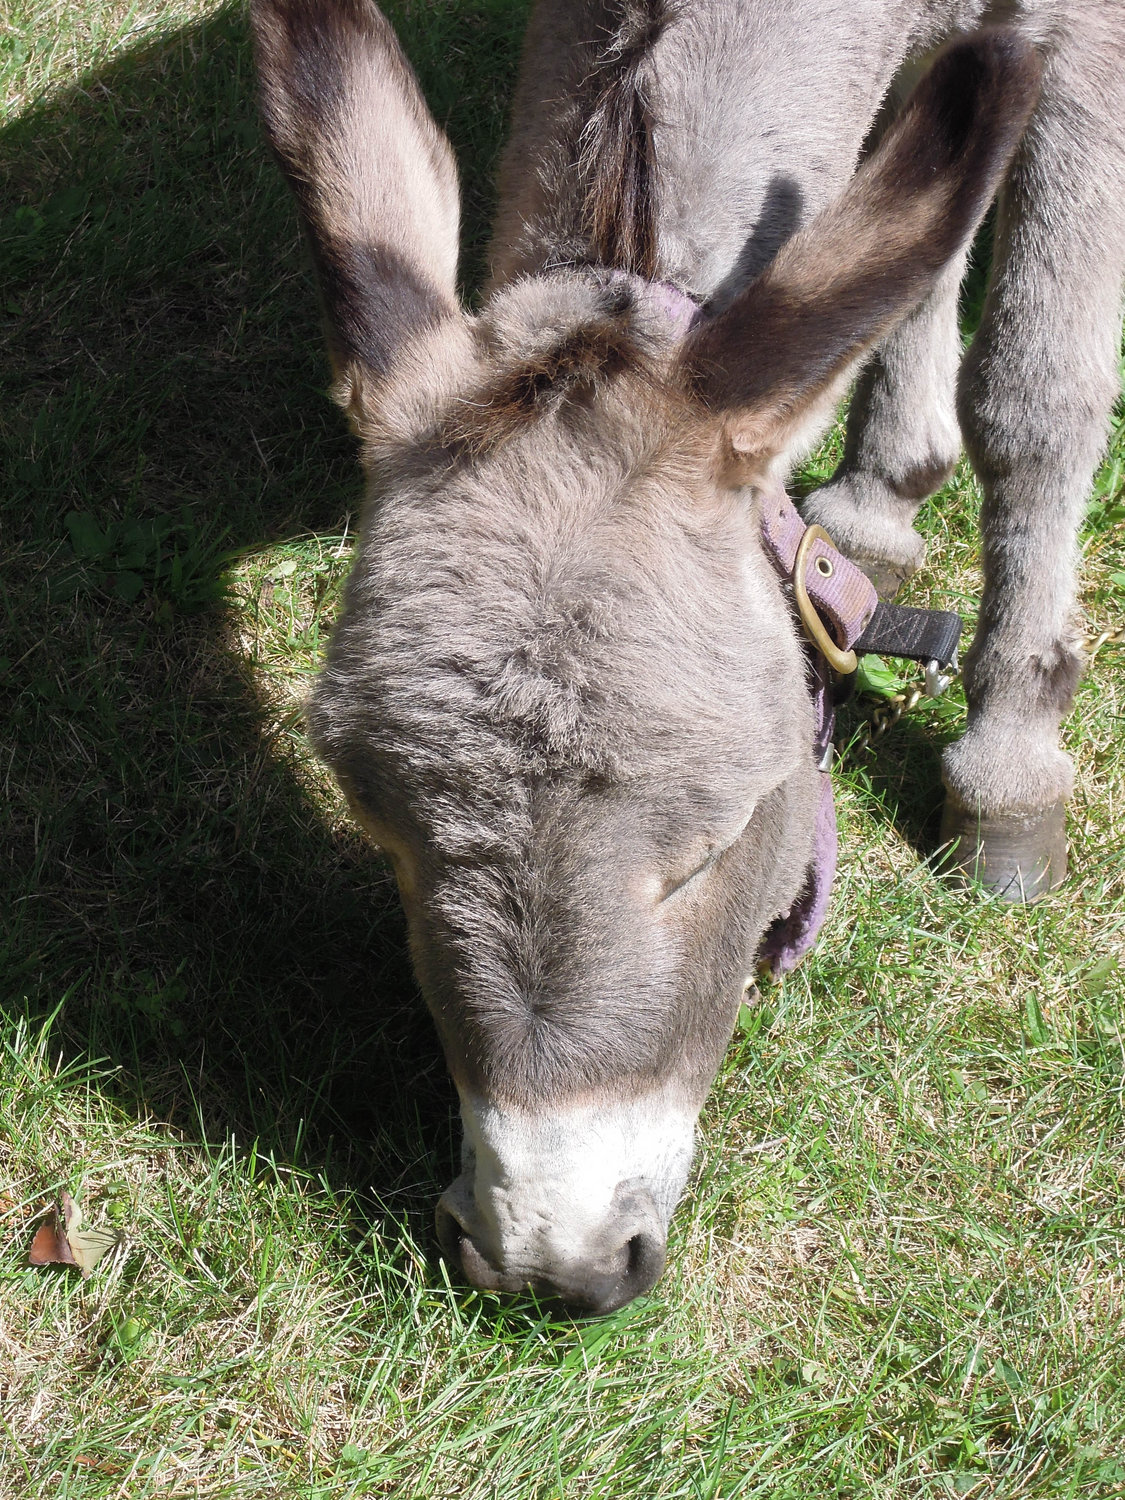 Lola the donkey taking a much-deserved  break during the annual  fair.